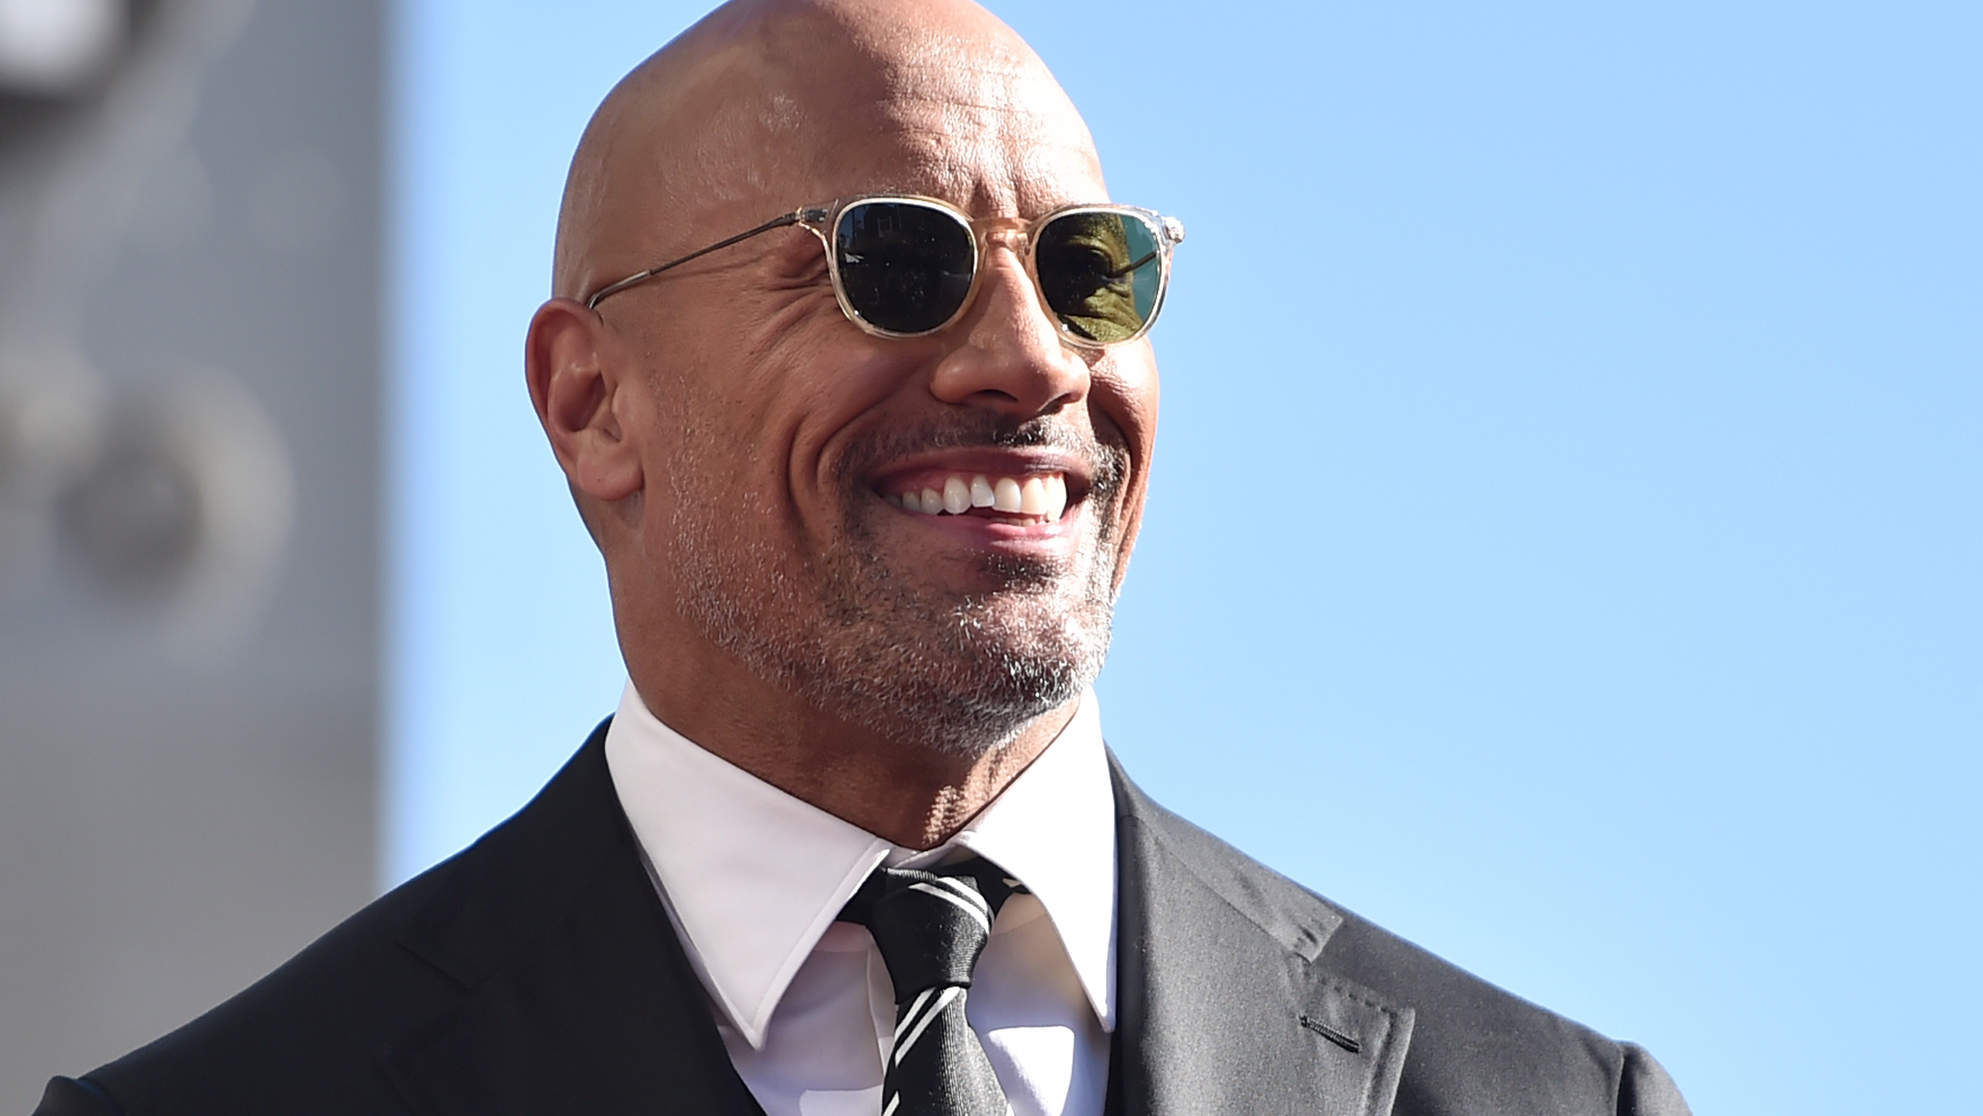 Dwayne 'The Rock' Johnson Teaches 2-Year-Old Daughter How to Say 'Girl Power' After Health Scare